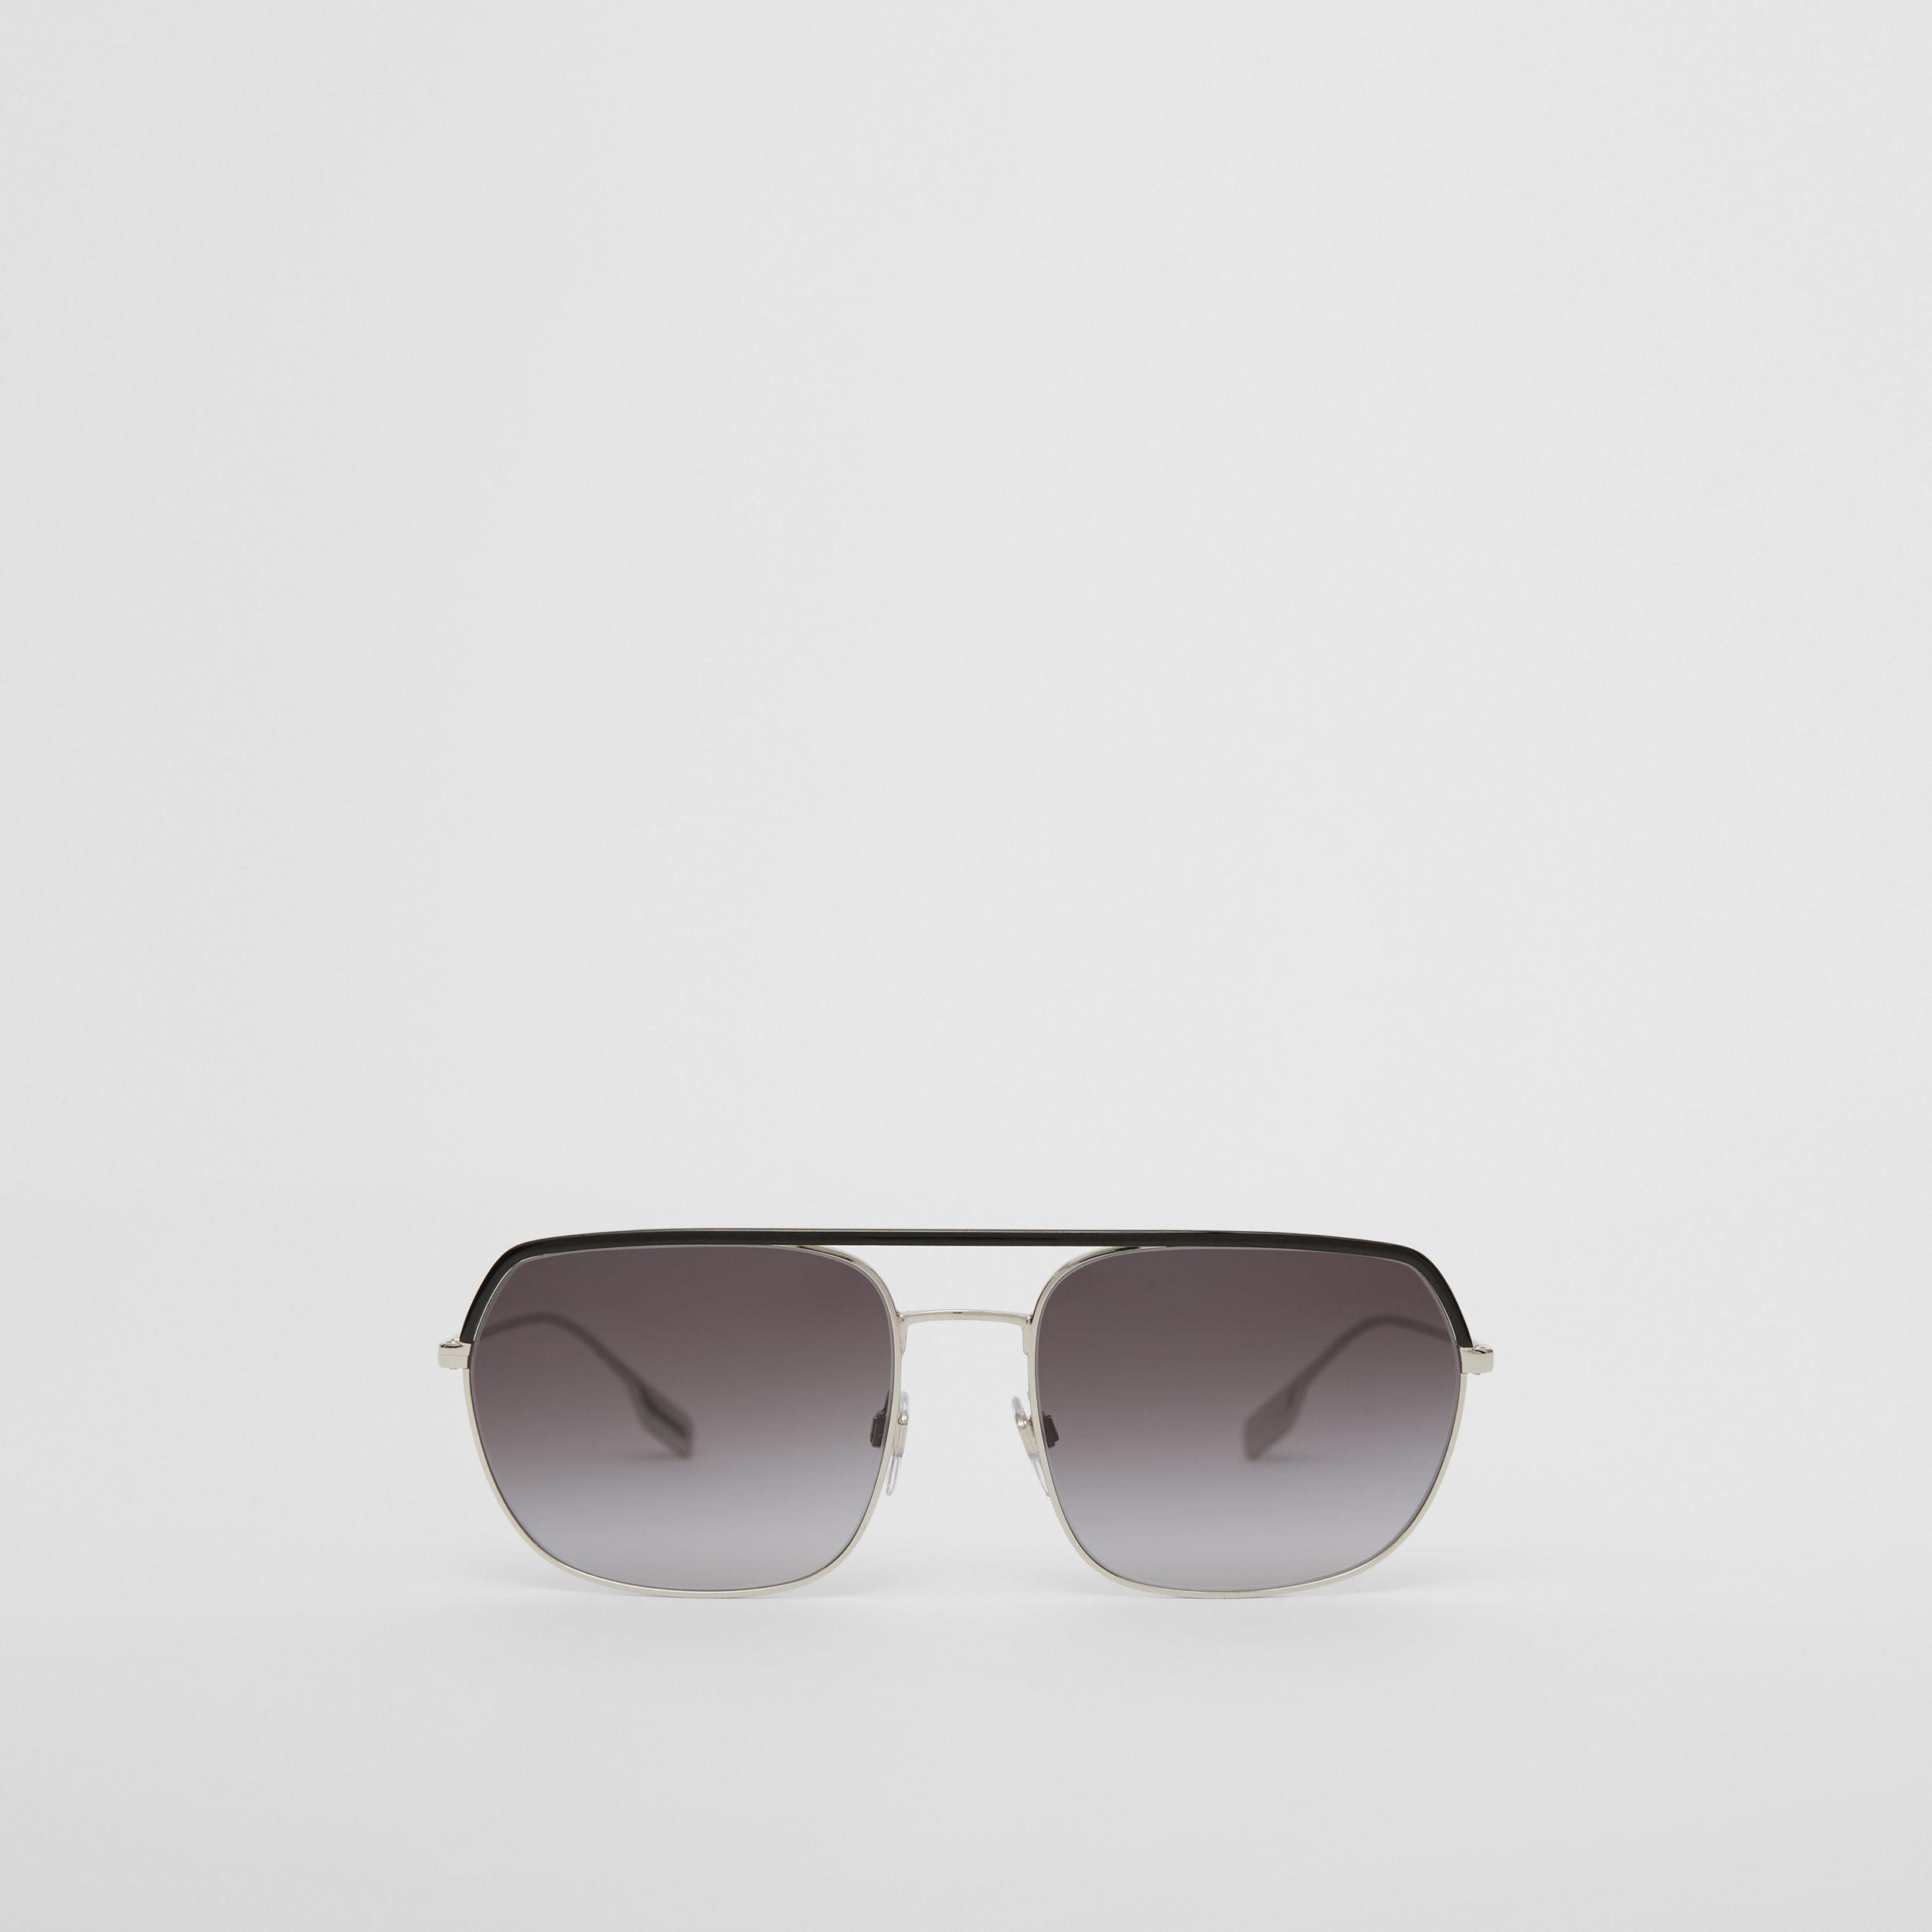 Square Pilot Sunglasses in Black - Men | Burberry - 1